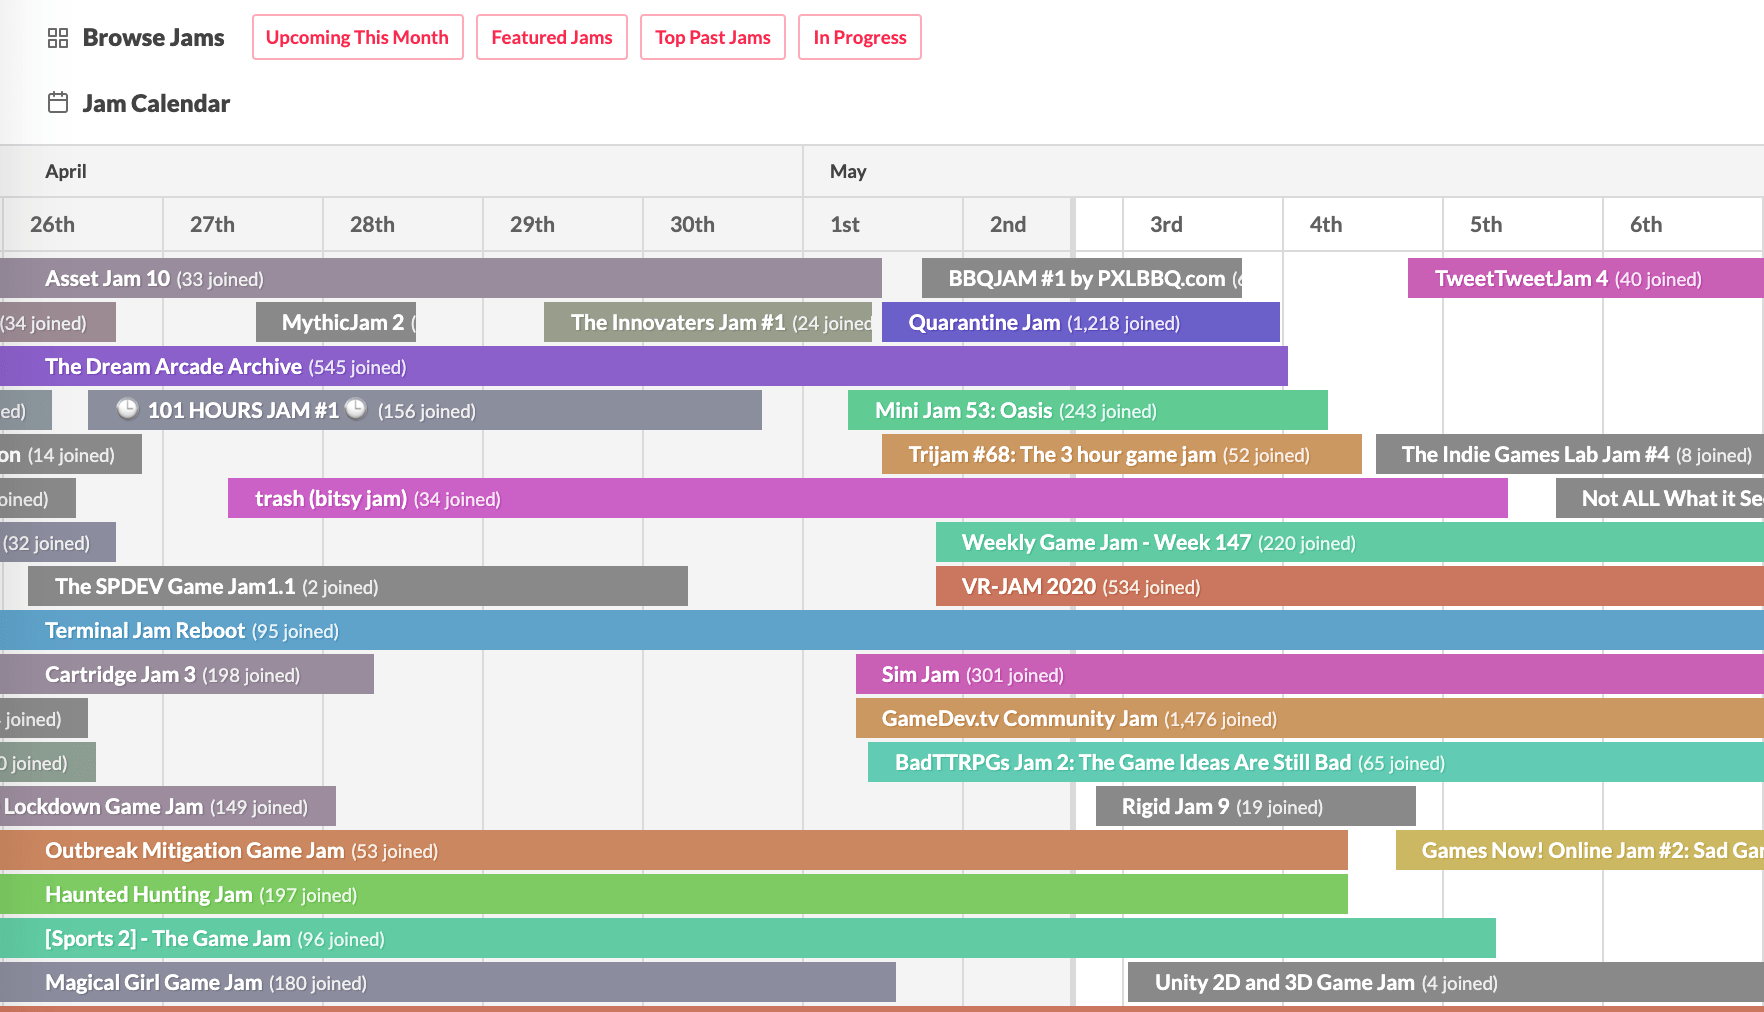 Related Content: Game Jams Calendar